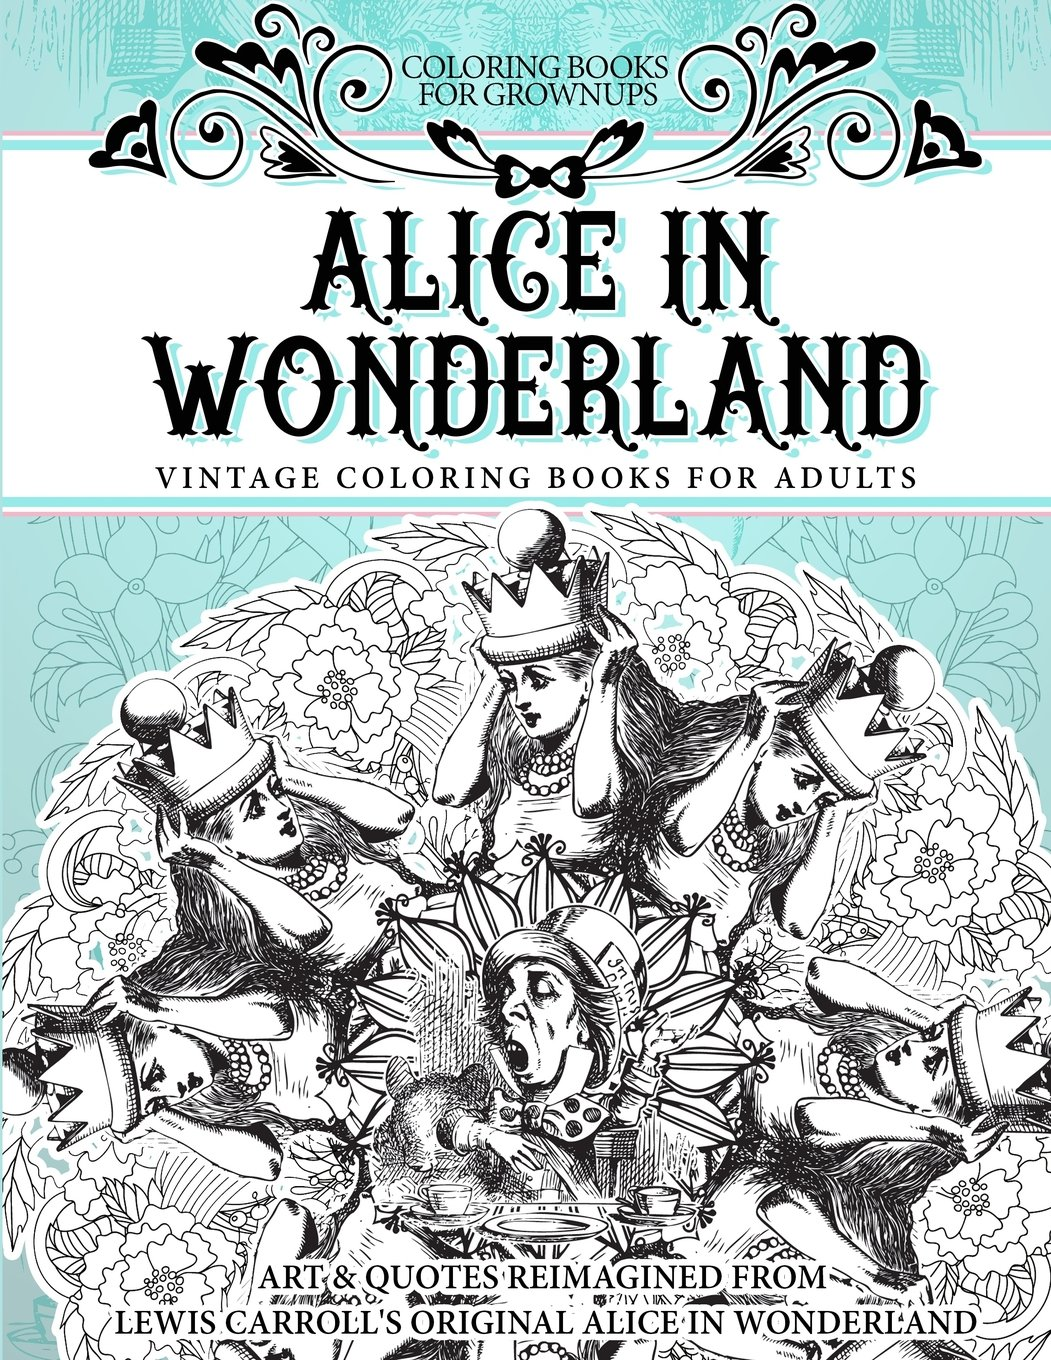 amazoncom coloring books for grownups alice in wonderland vintage coloring books for adults art quotes reimagined from lewis carrolls original alice - Coloring Book For Grown Ups